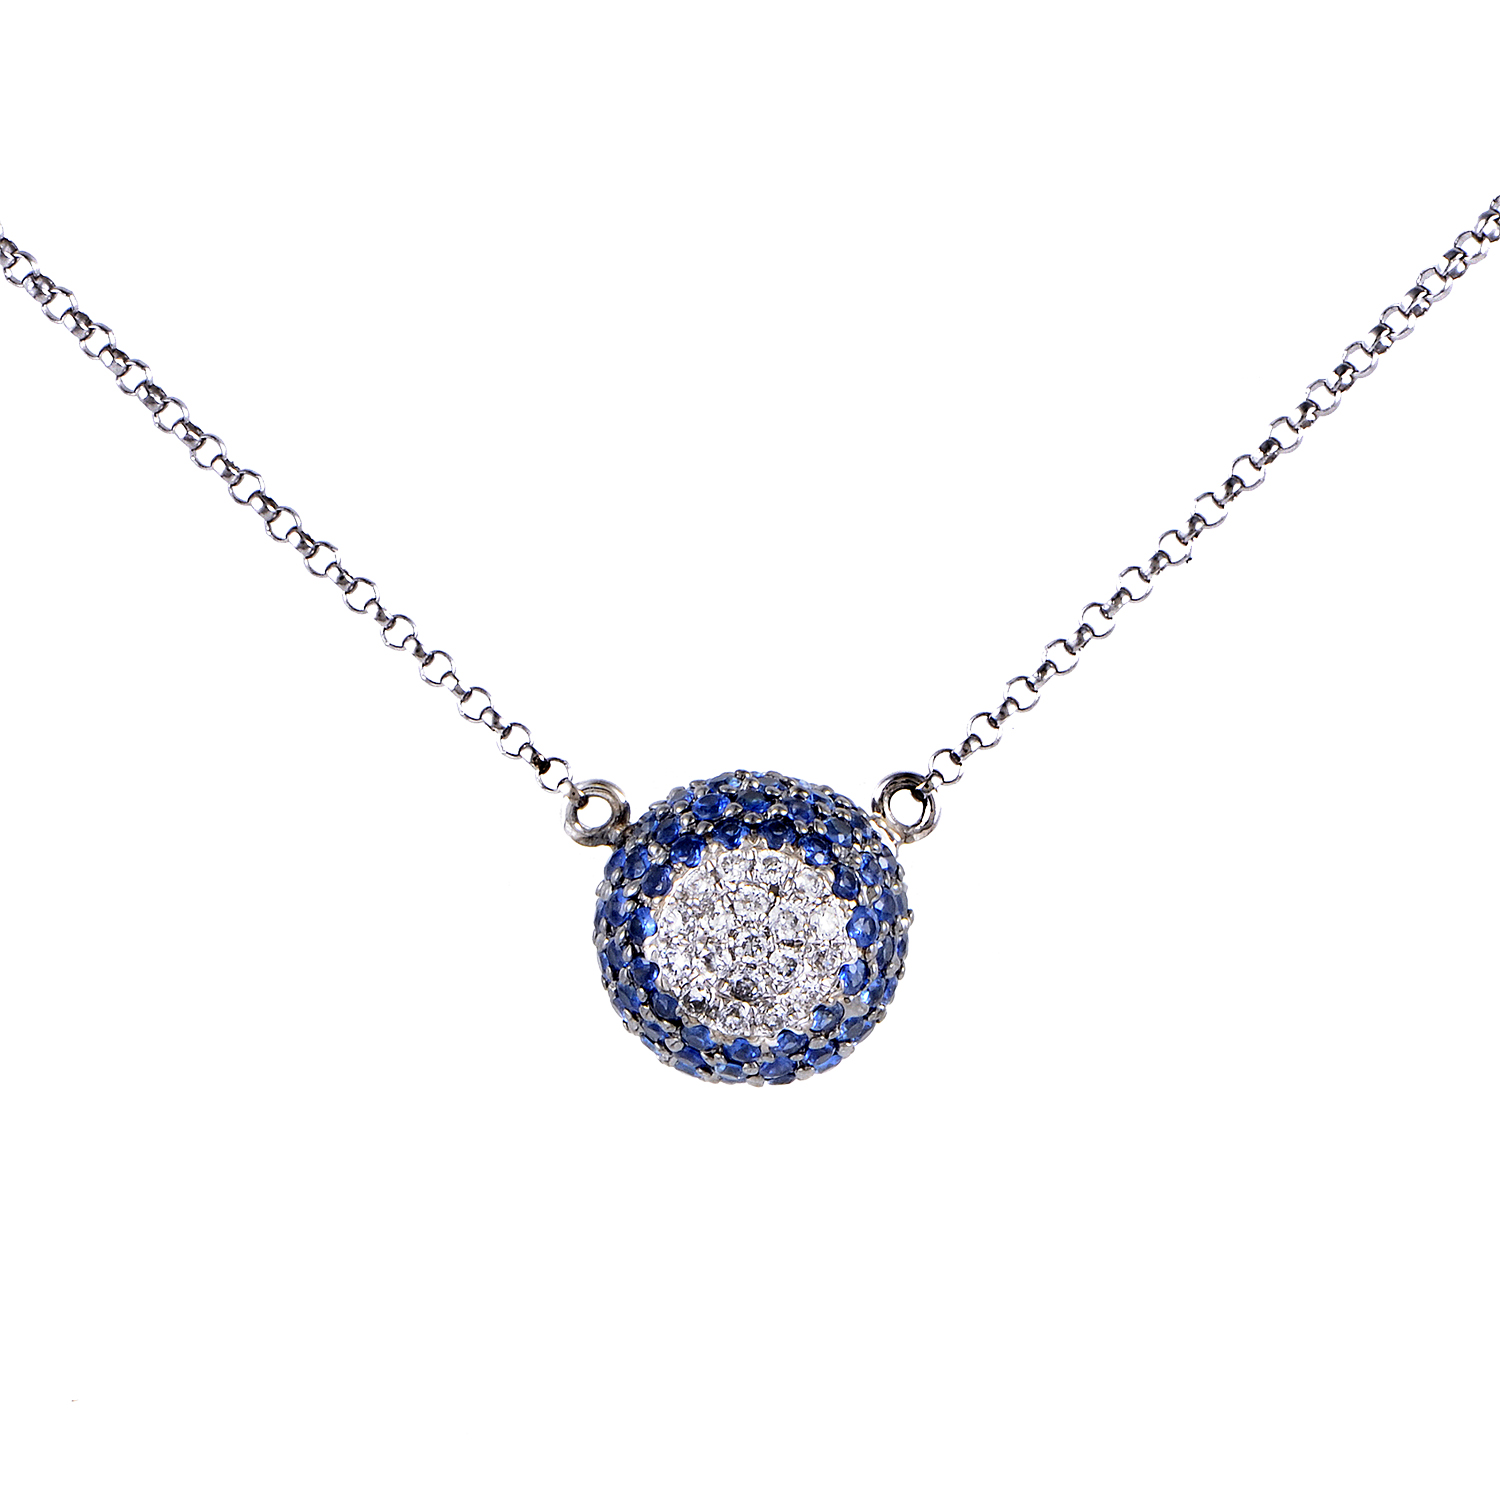 Women's 18K White Gold Diamond & Sapphire Pave Pendant Necklace KE5227NBZSA